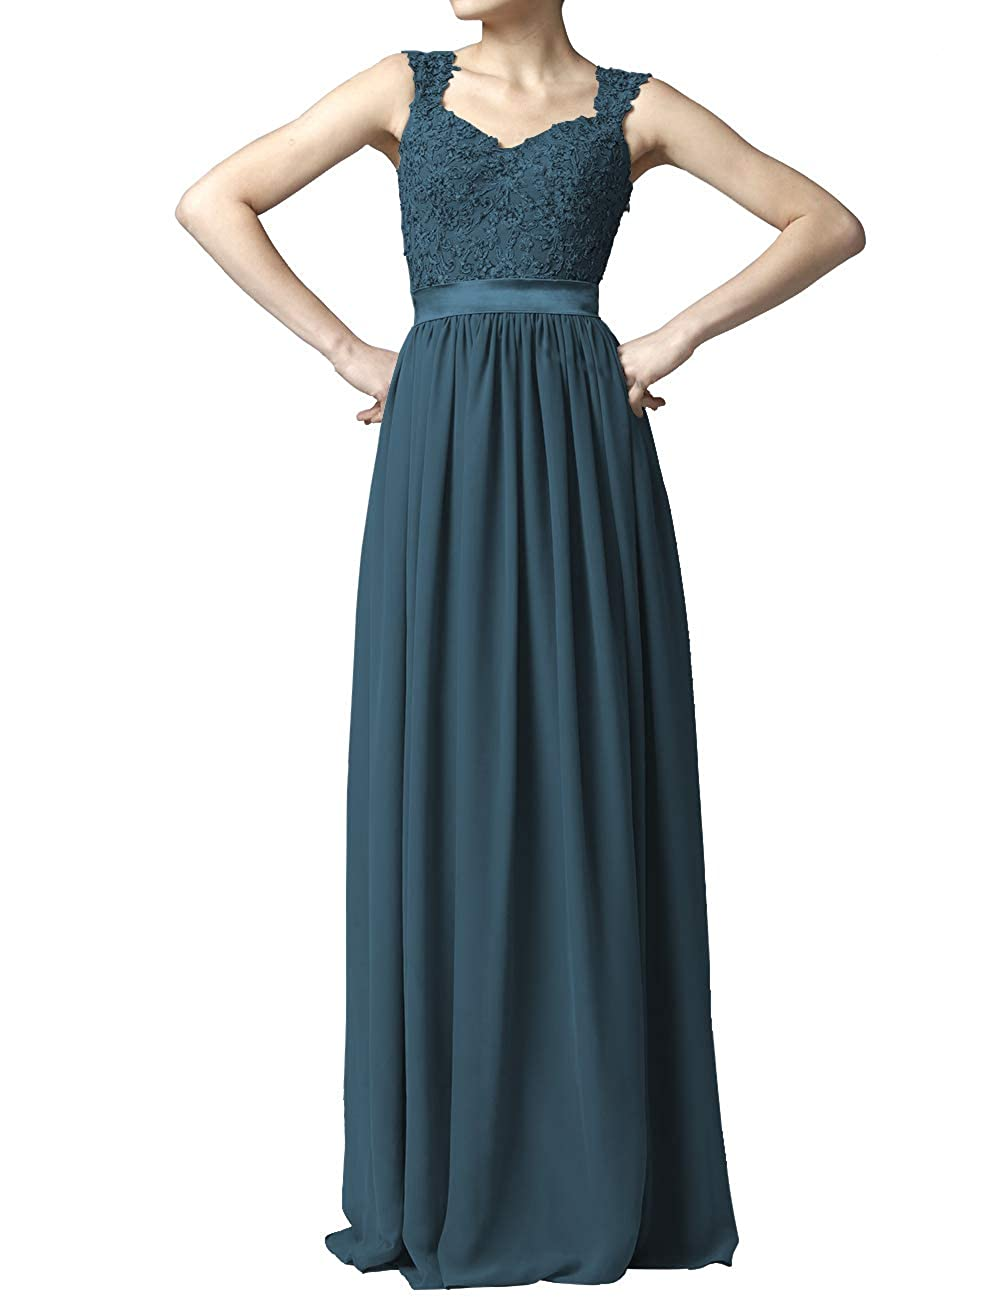 Teal Women' Cap Sleeve Lace Bridesmaid Dresses Long Wedding Party Gowns